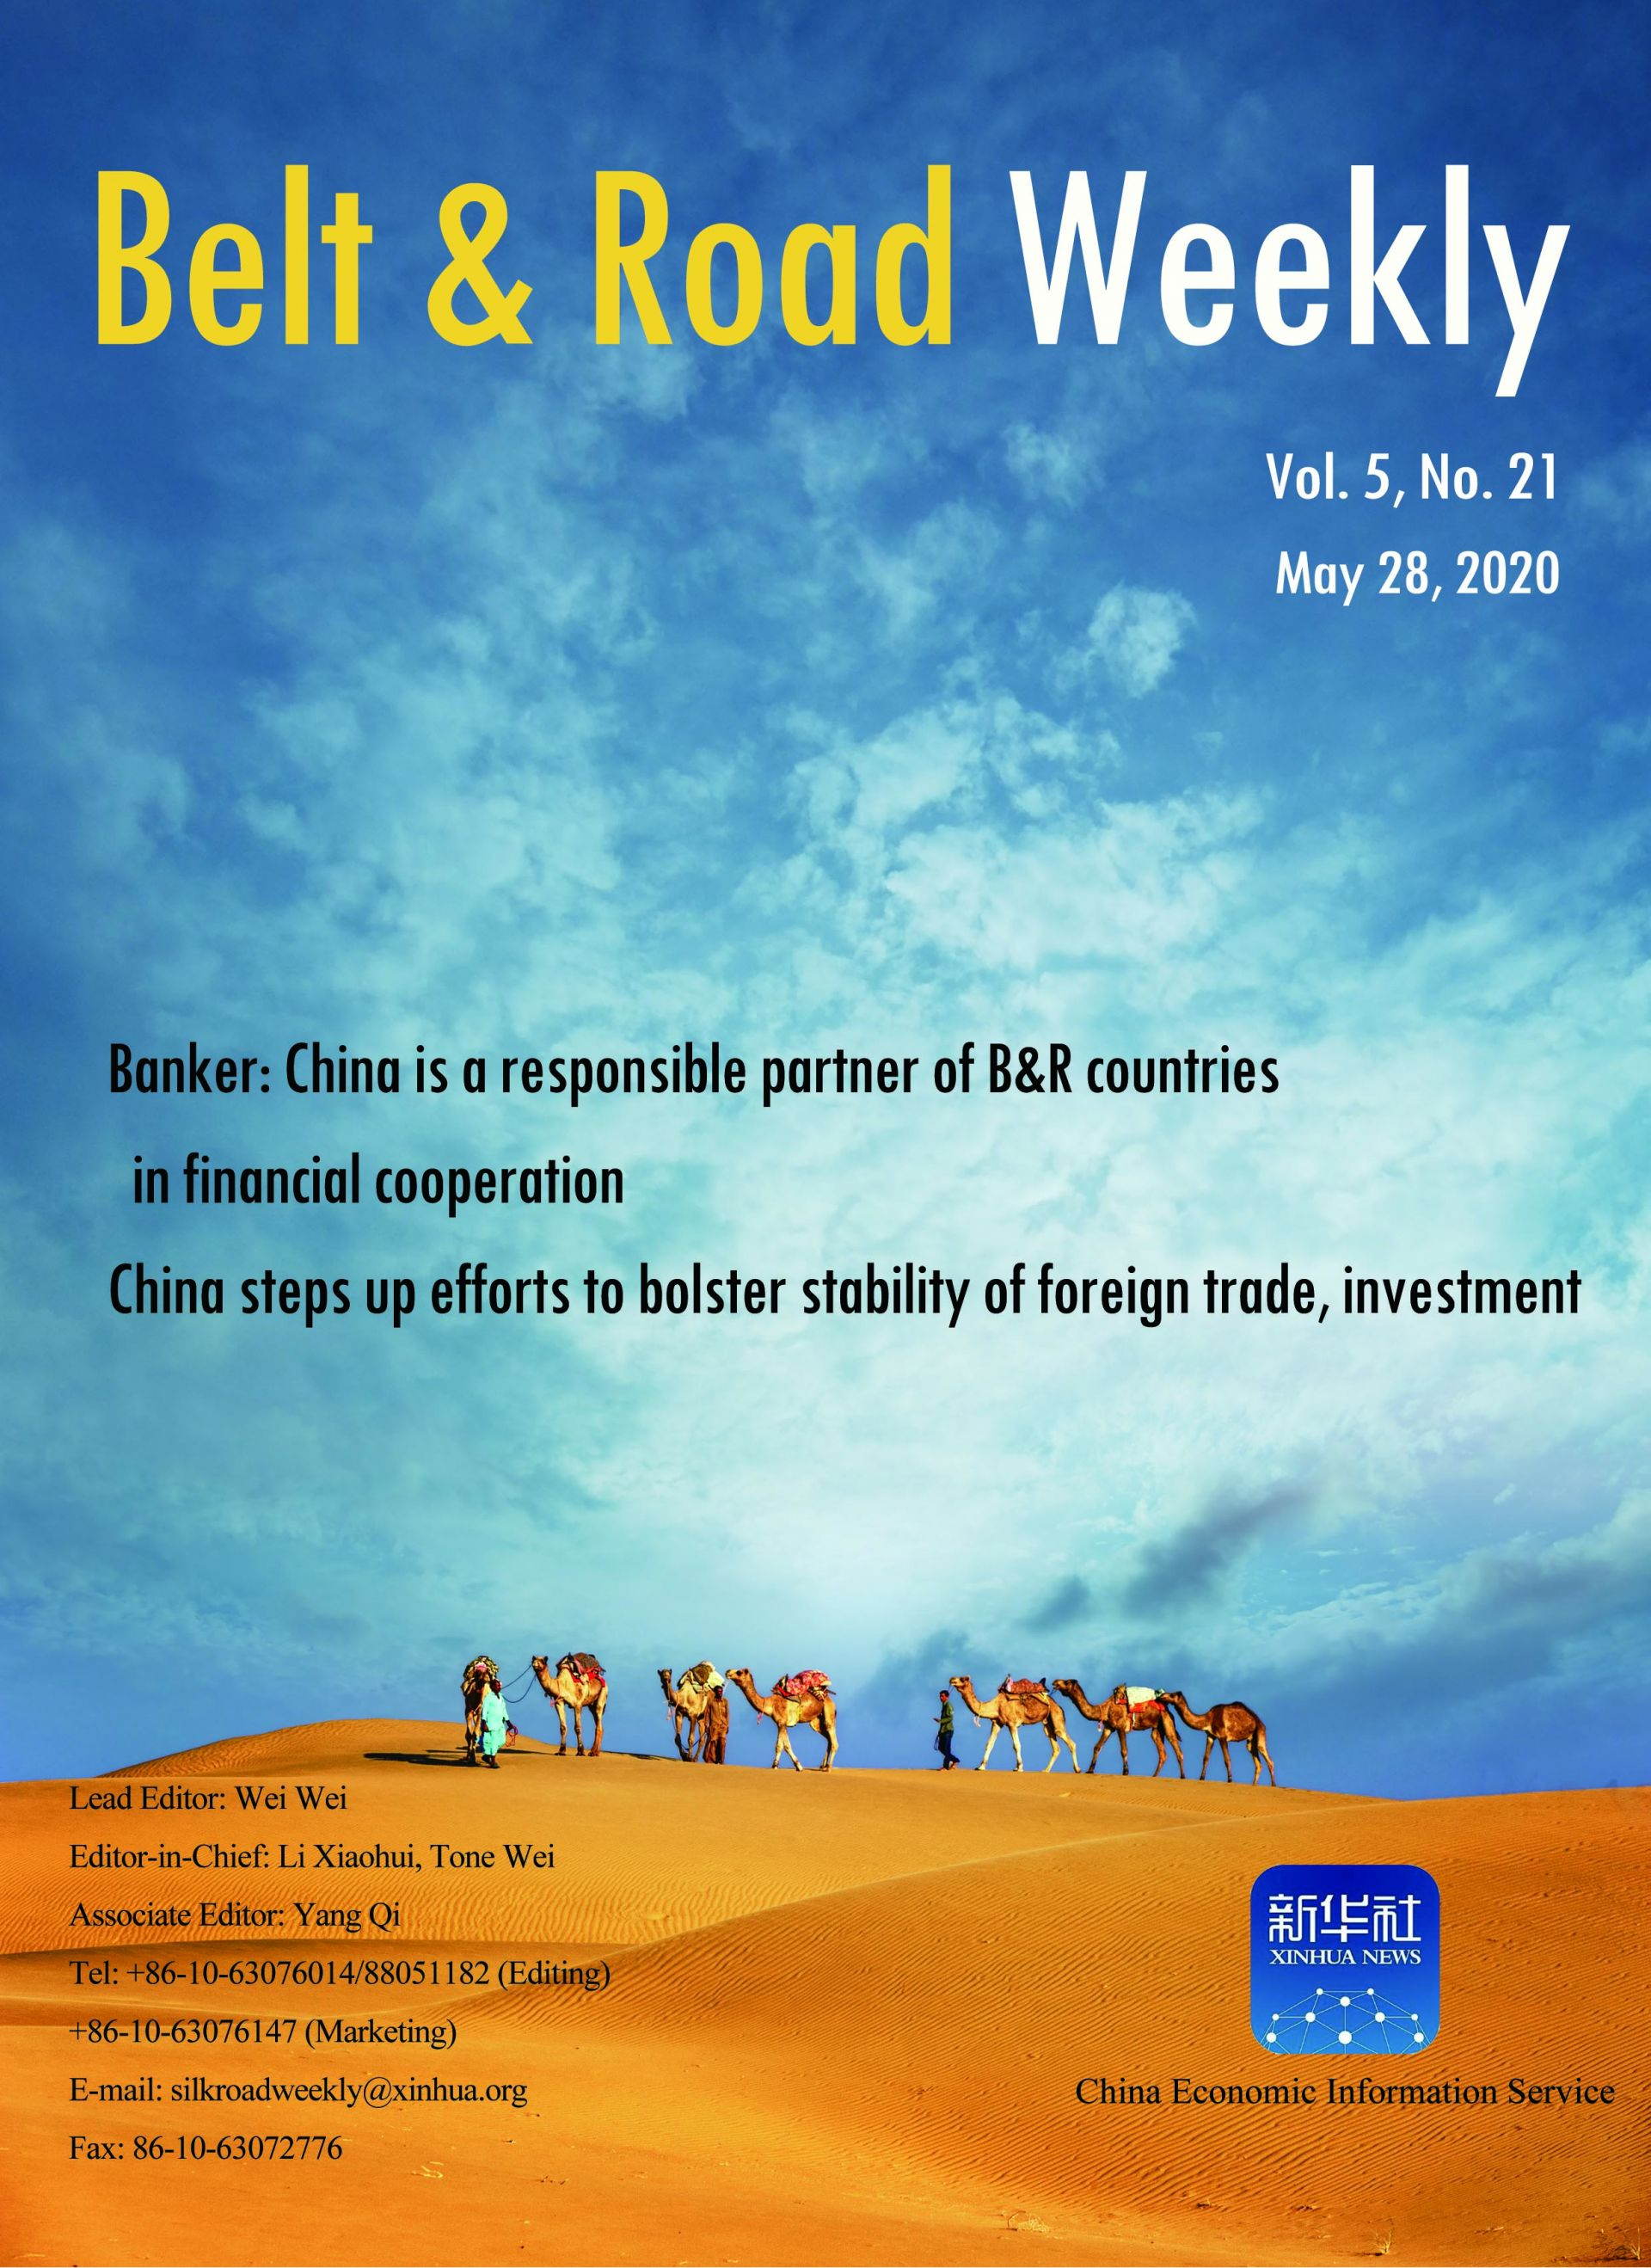 Belt & Road Weekly Vol. 5 No. 21